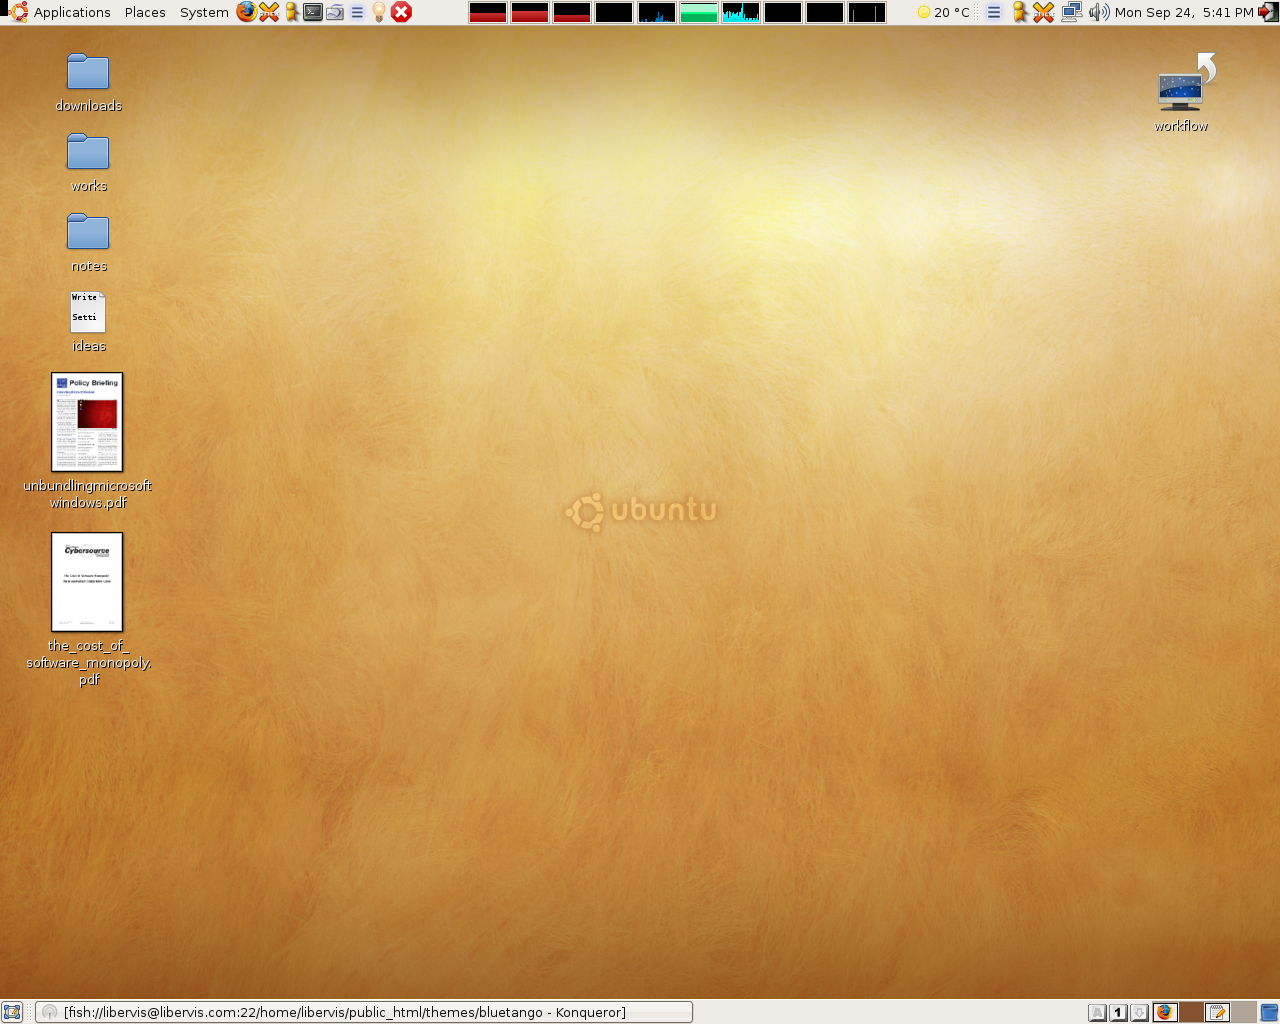 My current sunny desktop